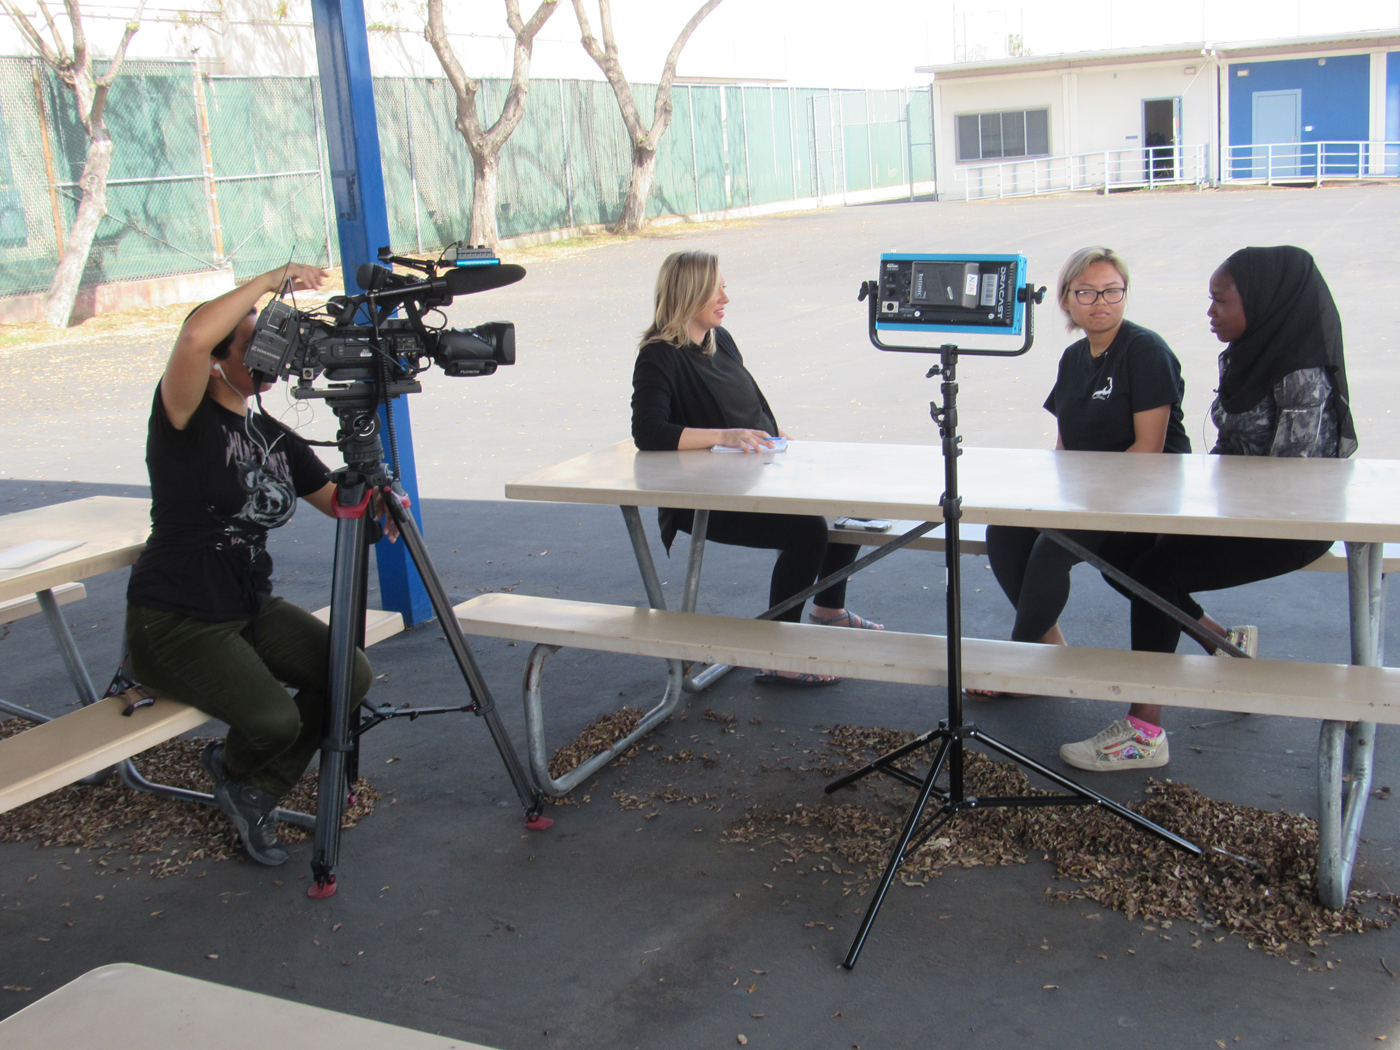 KPBS reporter Tarryn Mento interviews Makayla Siharath and Machair Adam about the upcoming Hoover Peace Conference Against Gun Violence symposium scheduled for April 20.